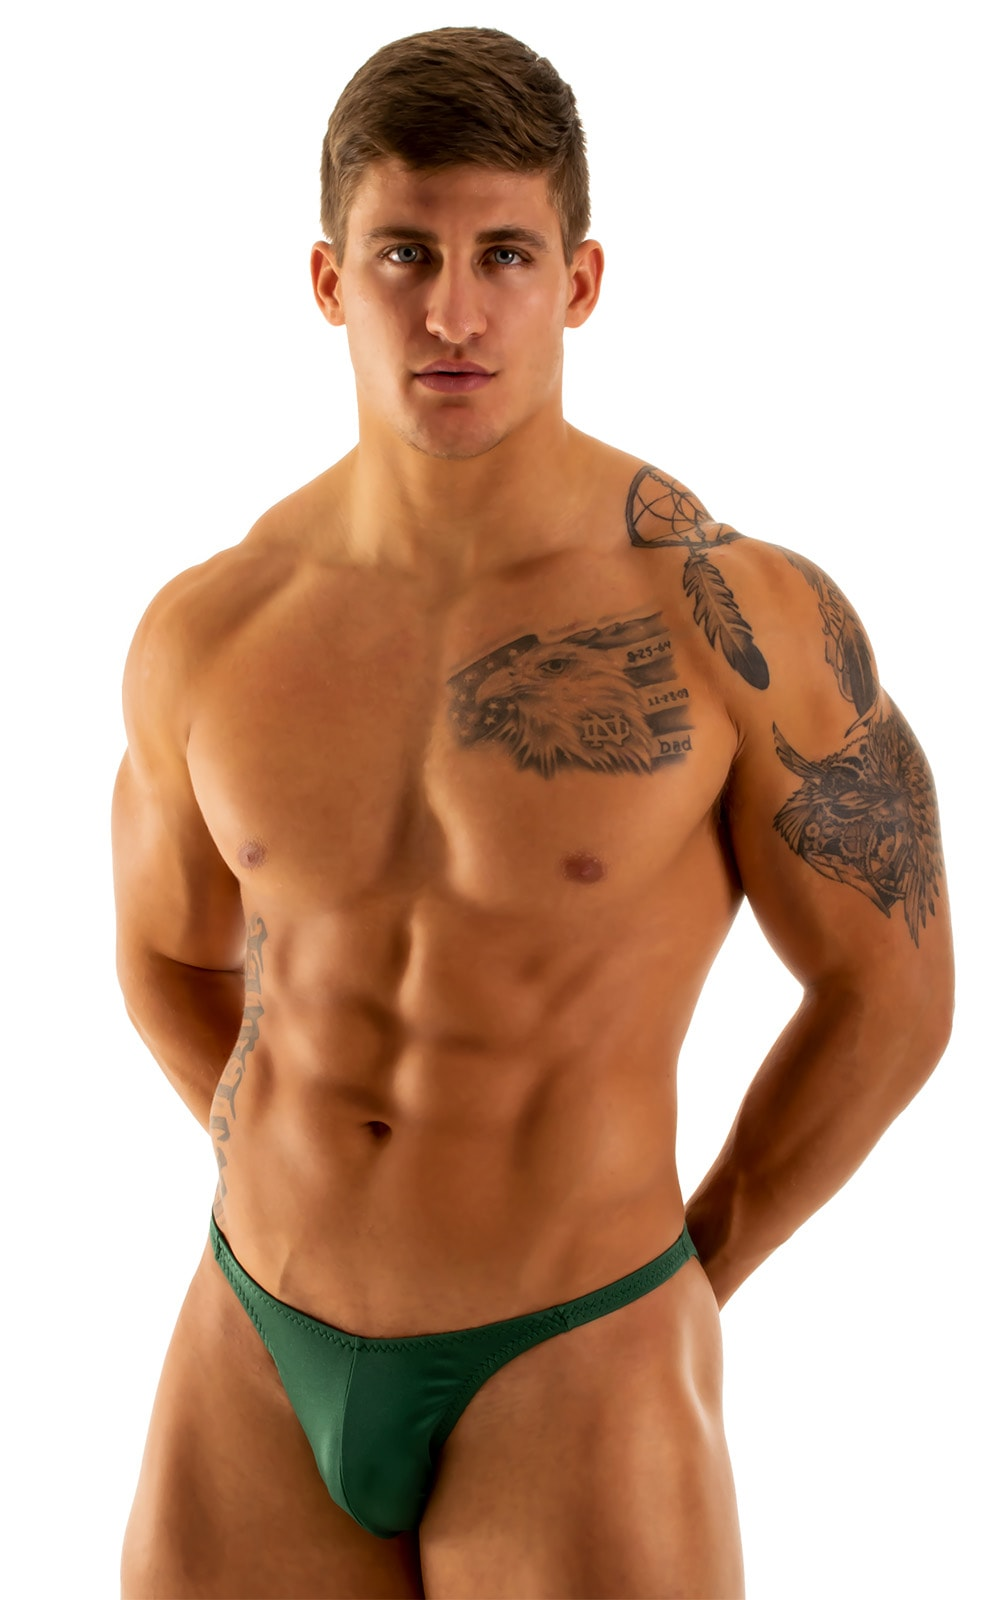 Fitted Pouch - Puckered Back - Posing Suit in Hunter Green 1